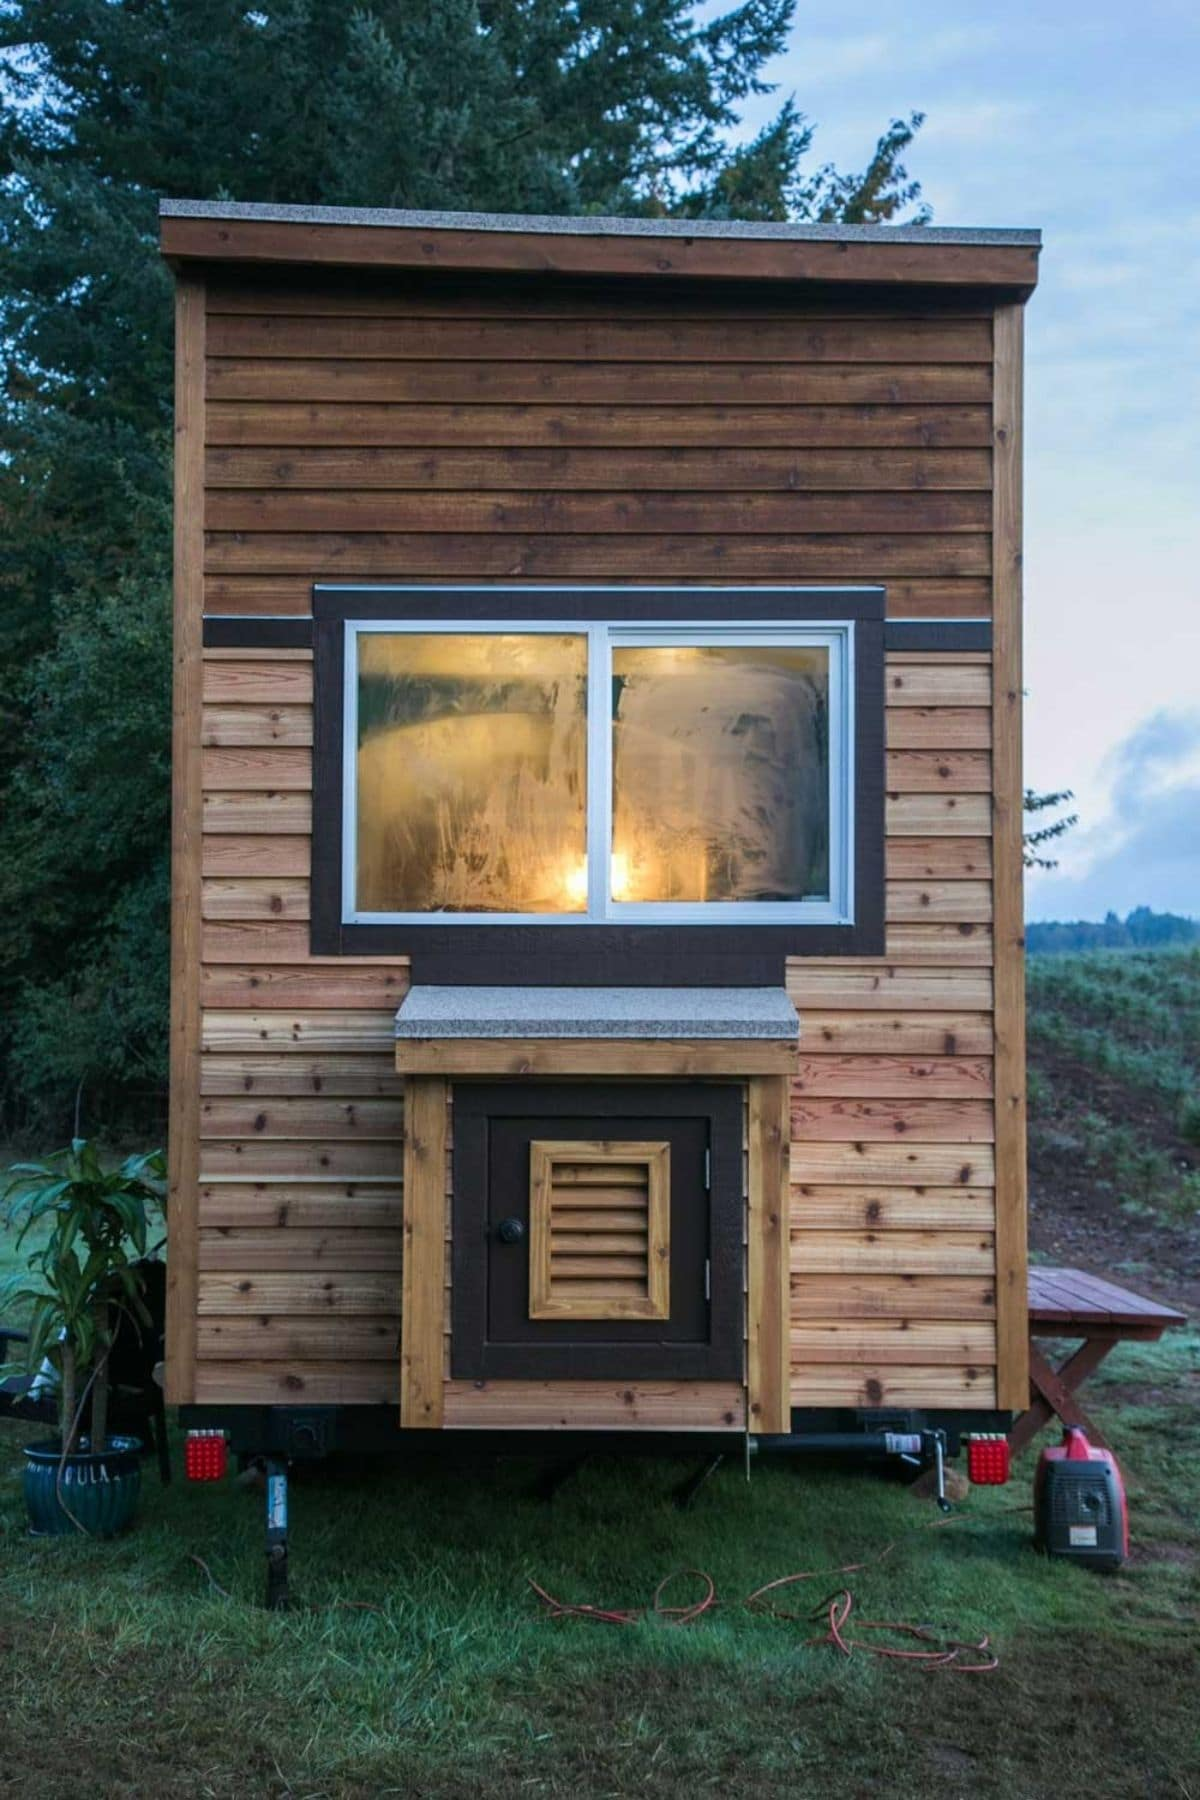 End of wood siding archway tiny home with double window